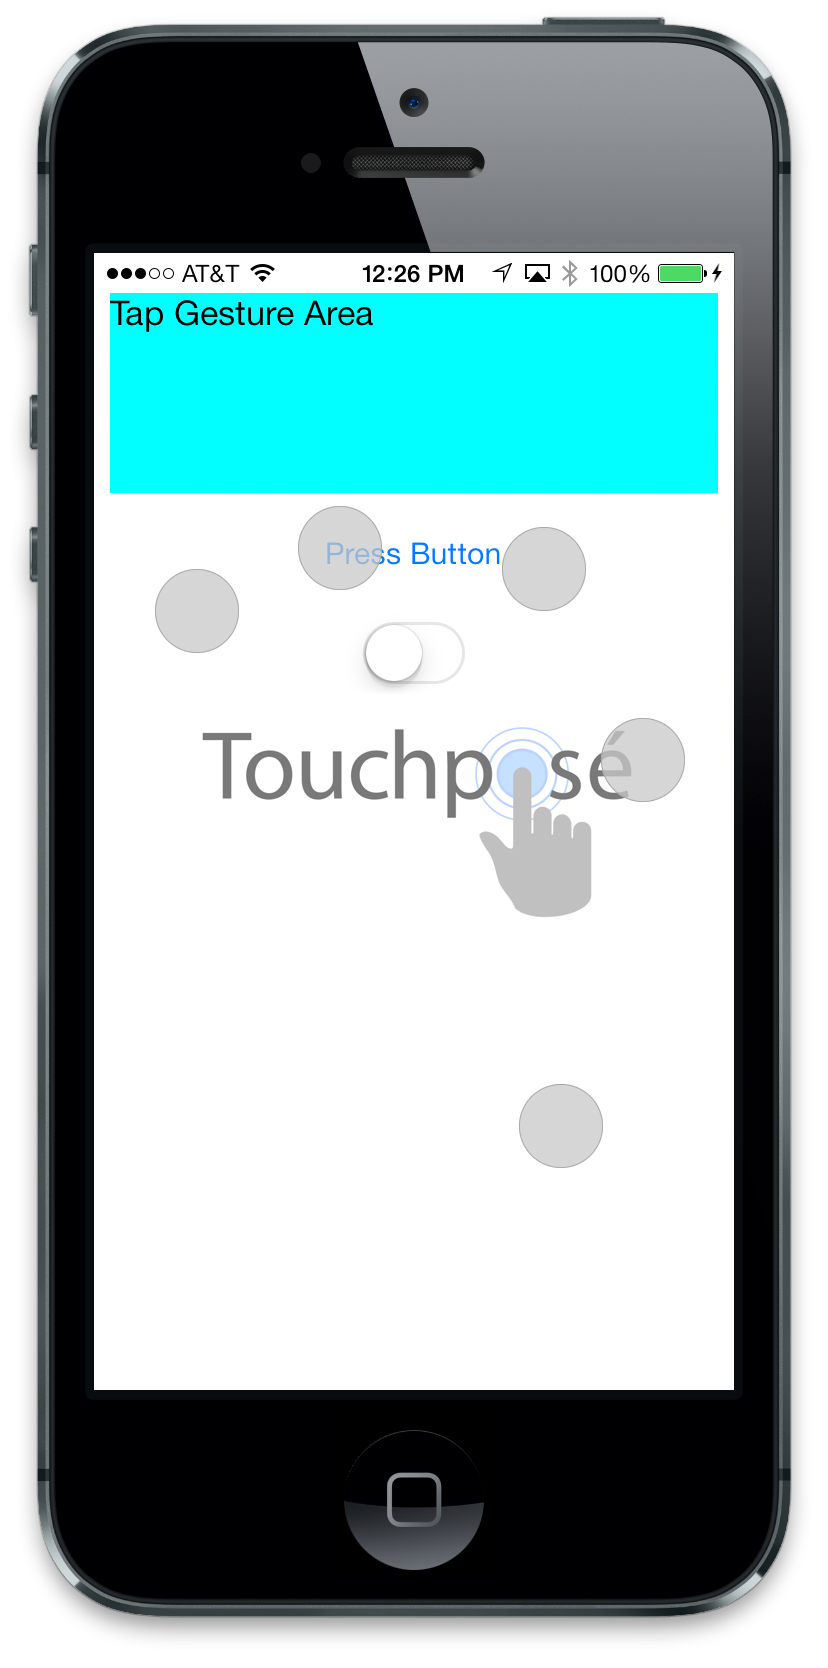 Touchpose-iPhone-Screen.png